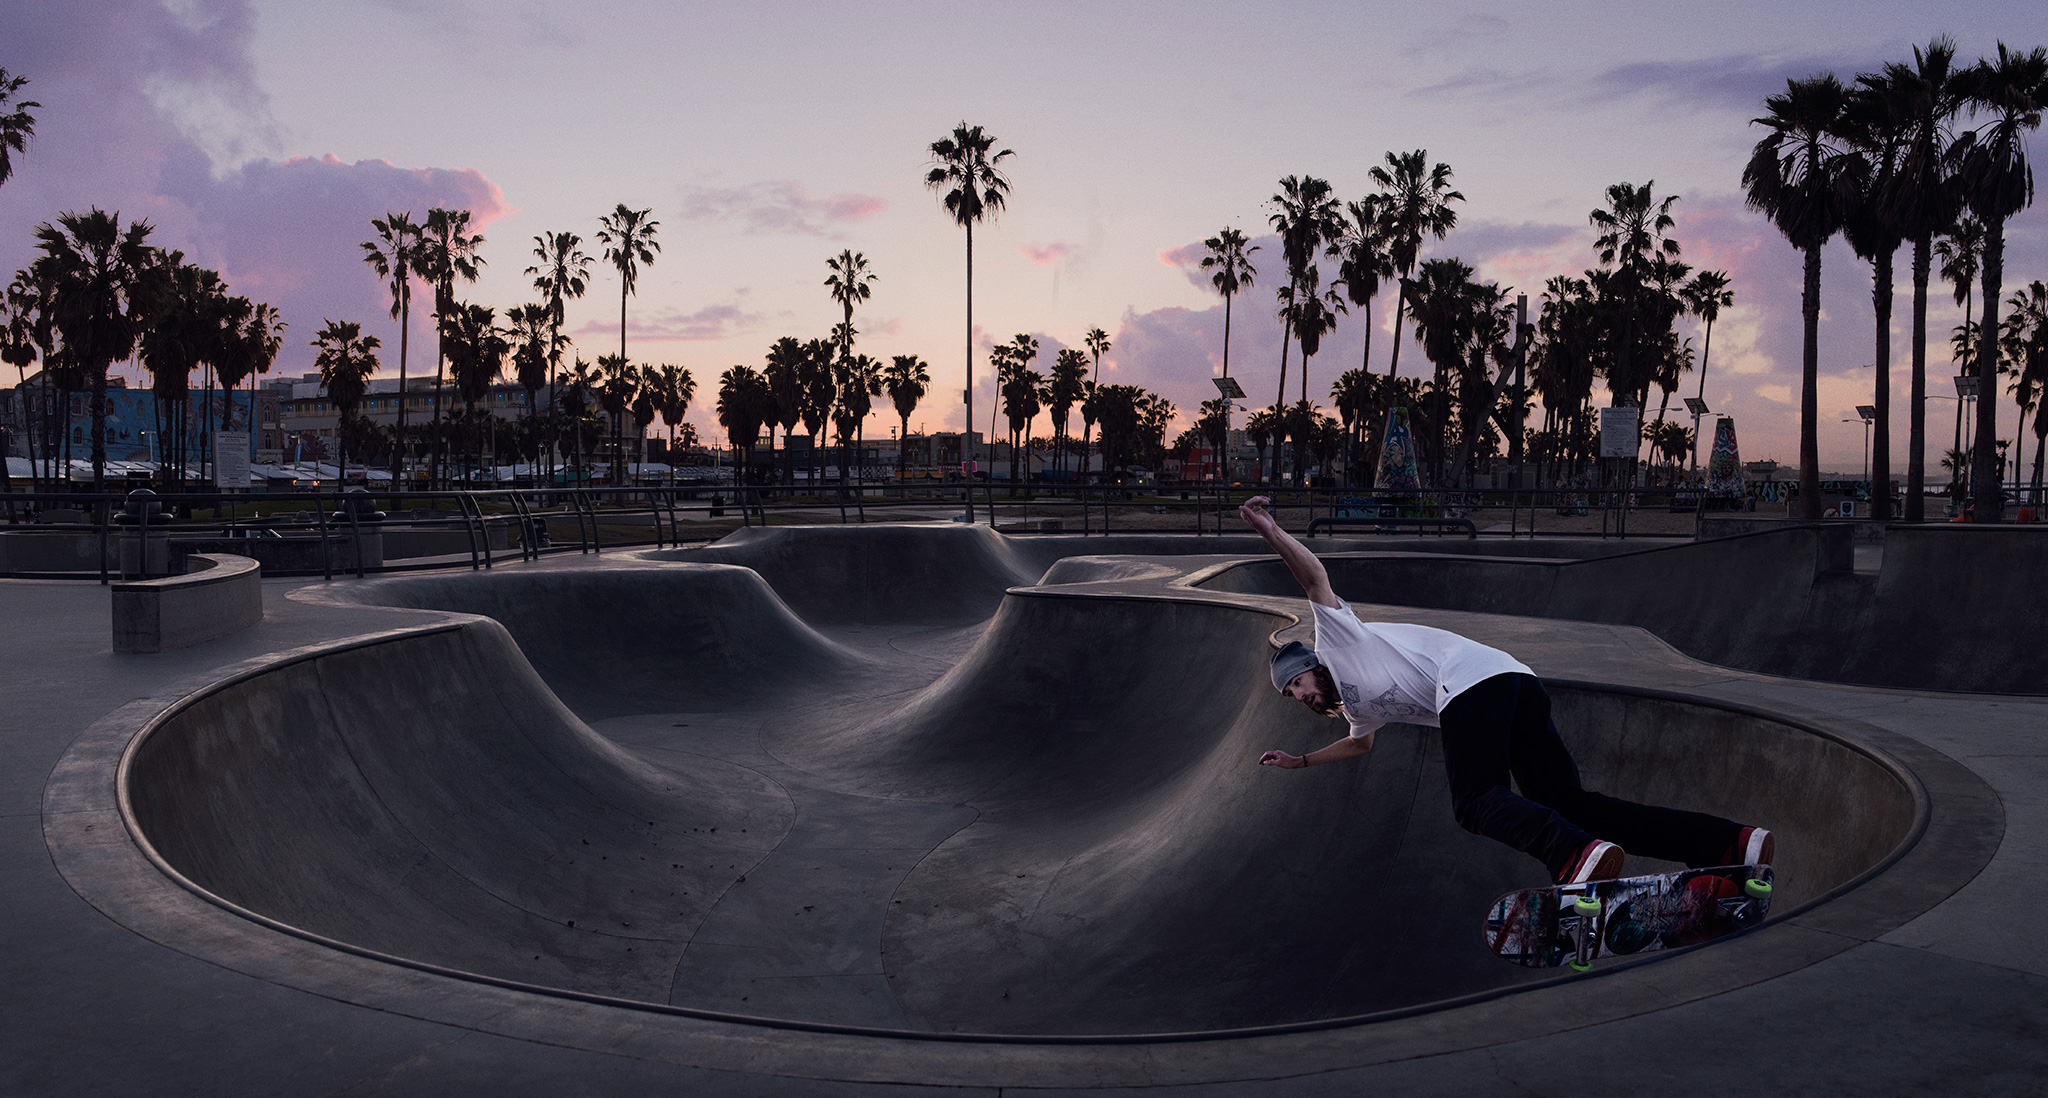 Early Morning Skateboarder at Venice Beach Skatepark | Zach Ancell Photographer